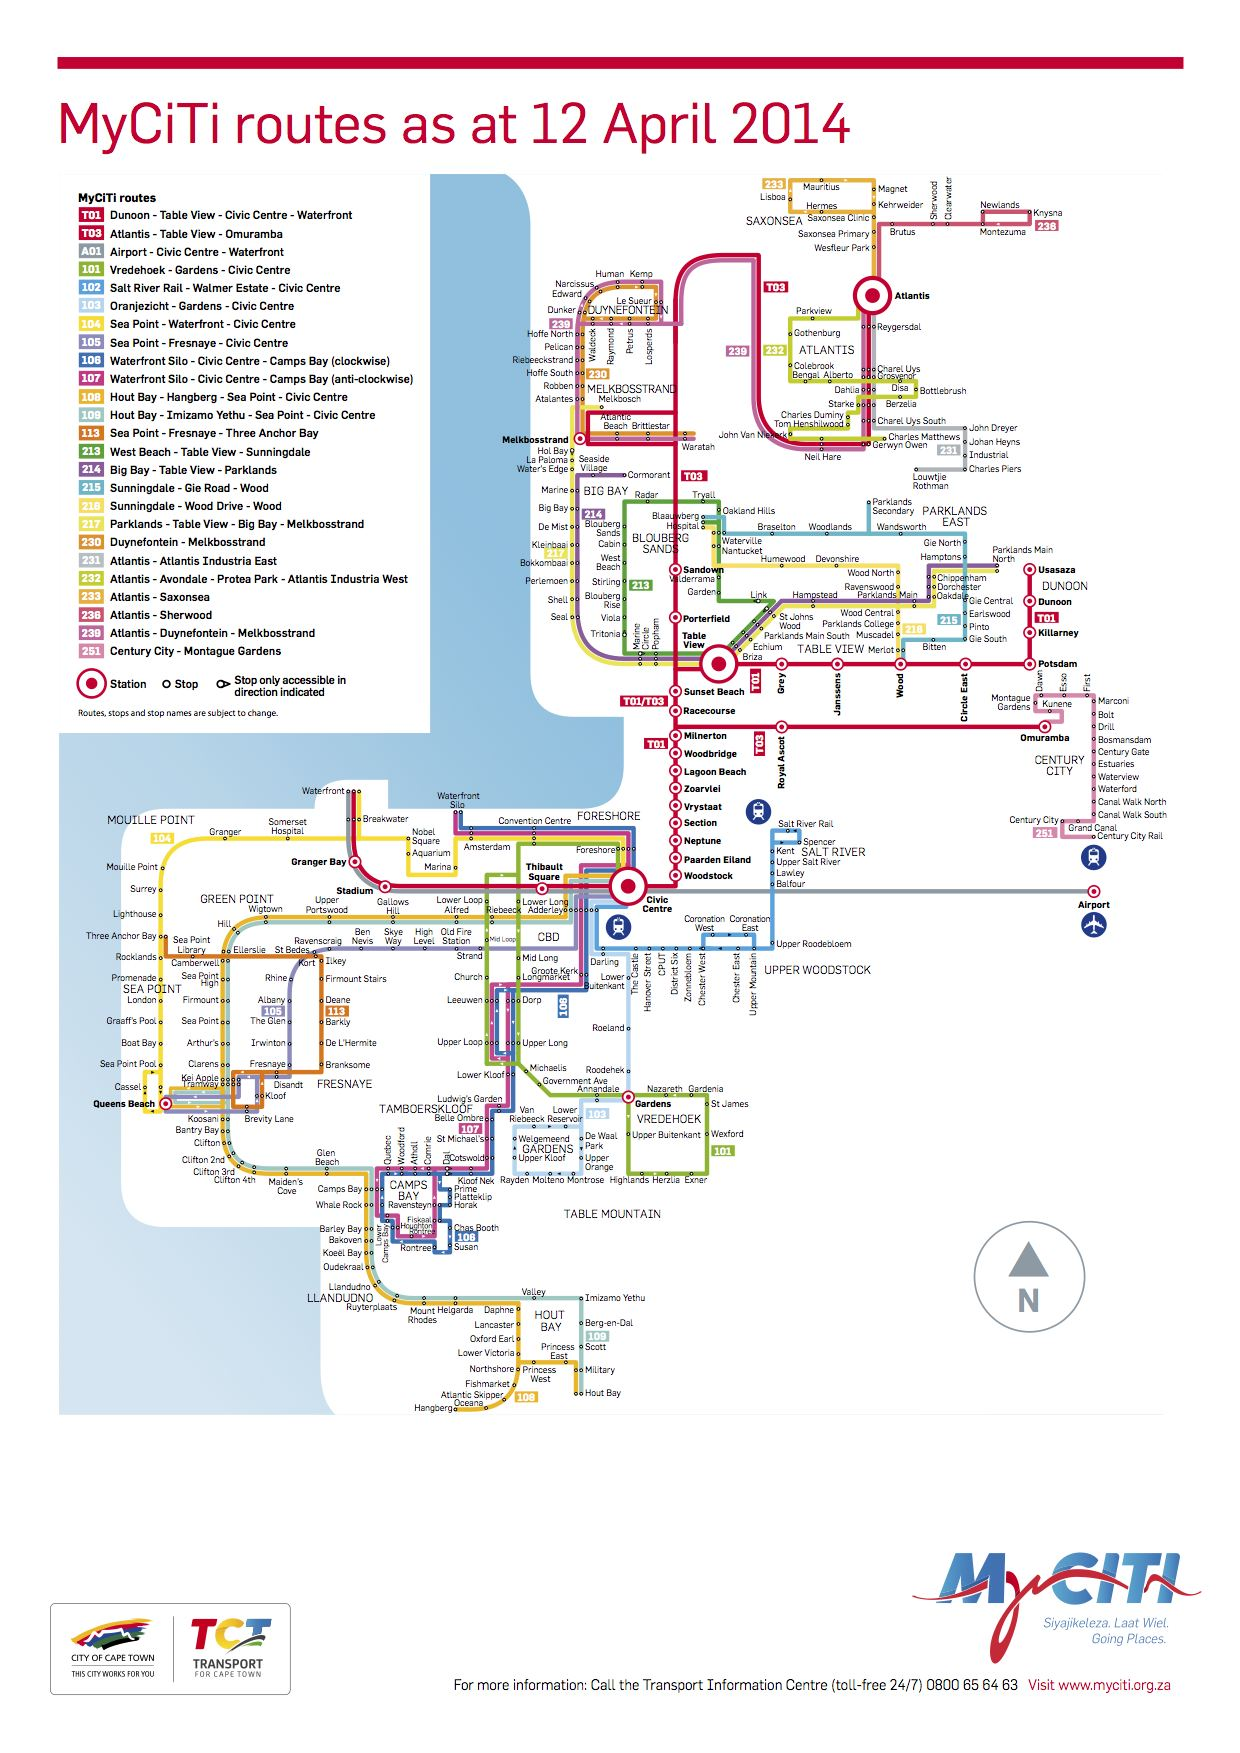 System map as at 12 April